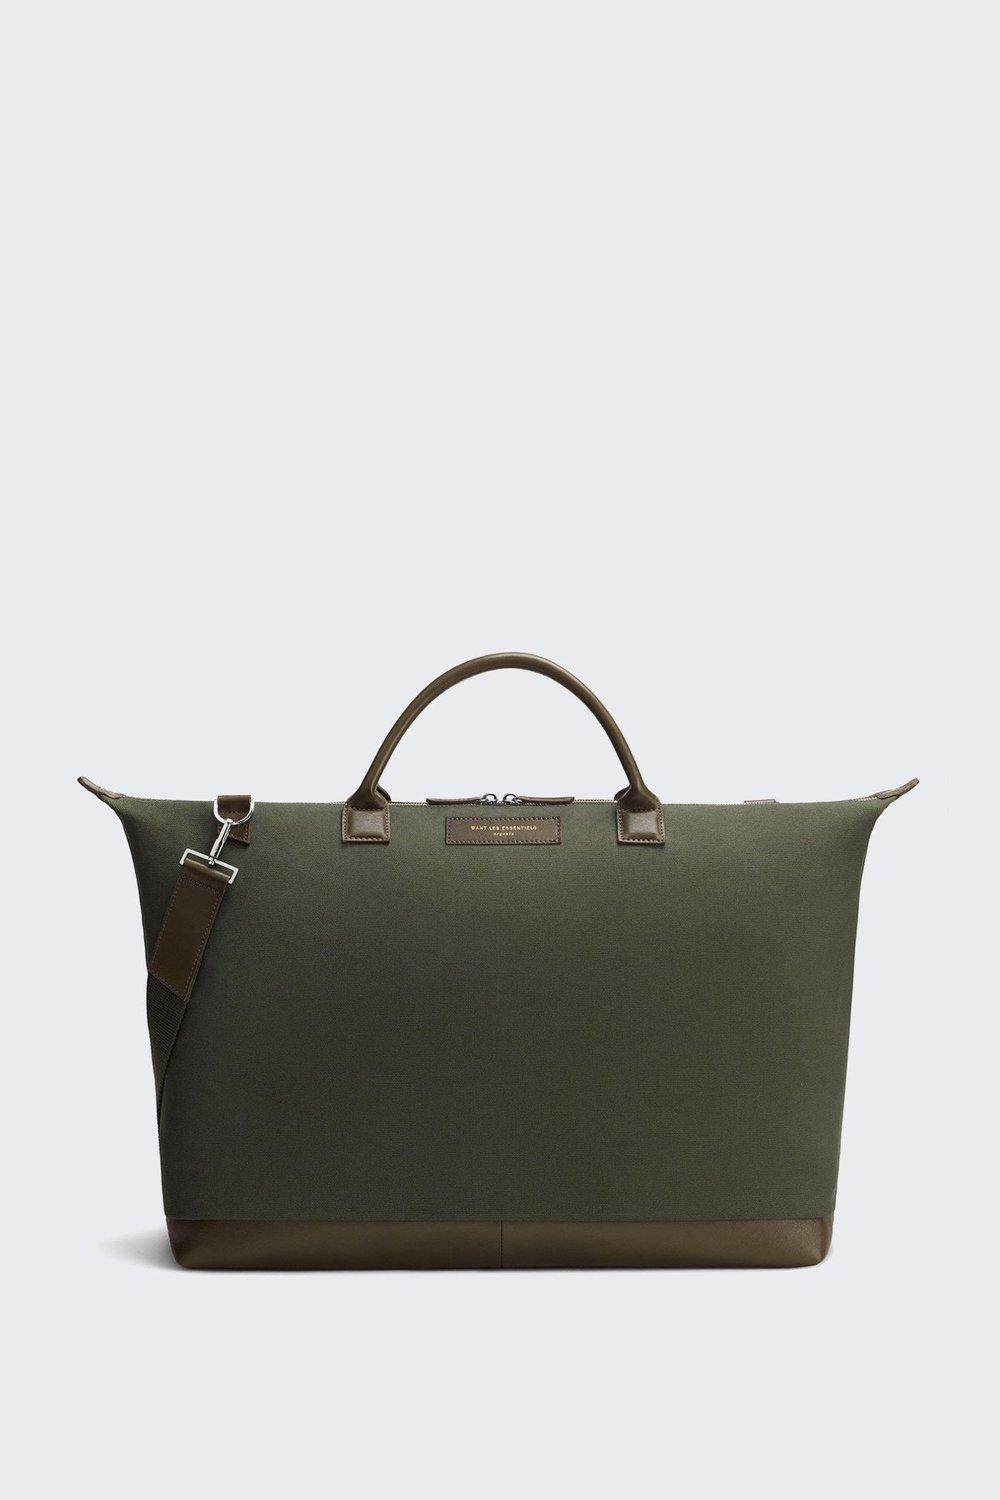 Want Les Essentials Hartsfield Weekender in Olive Green $730